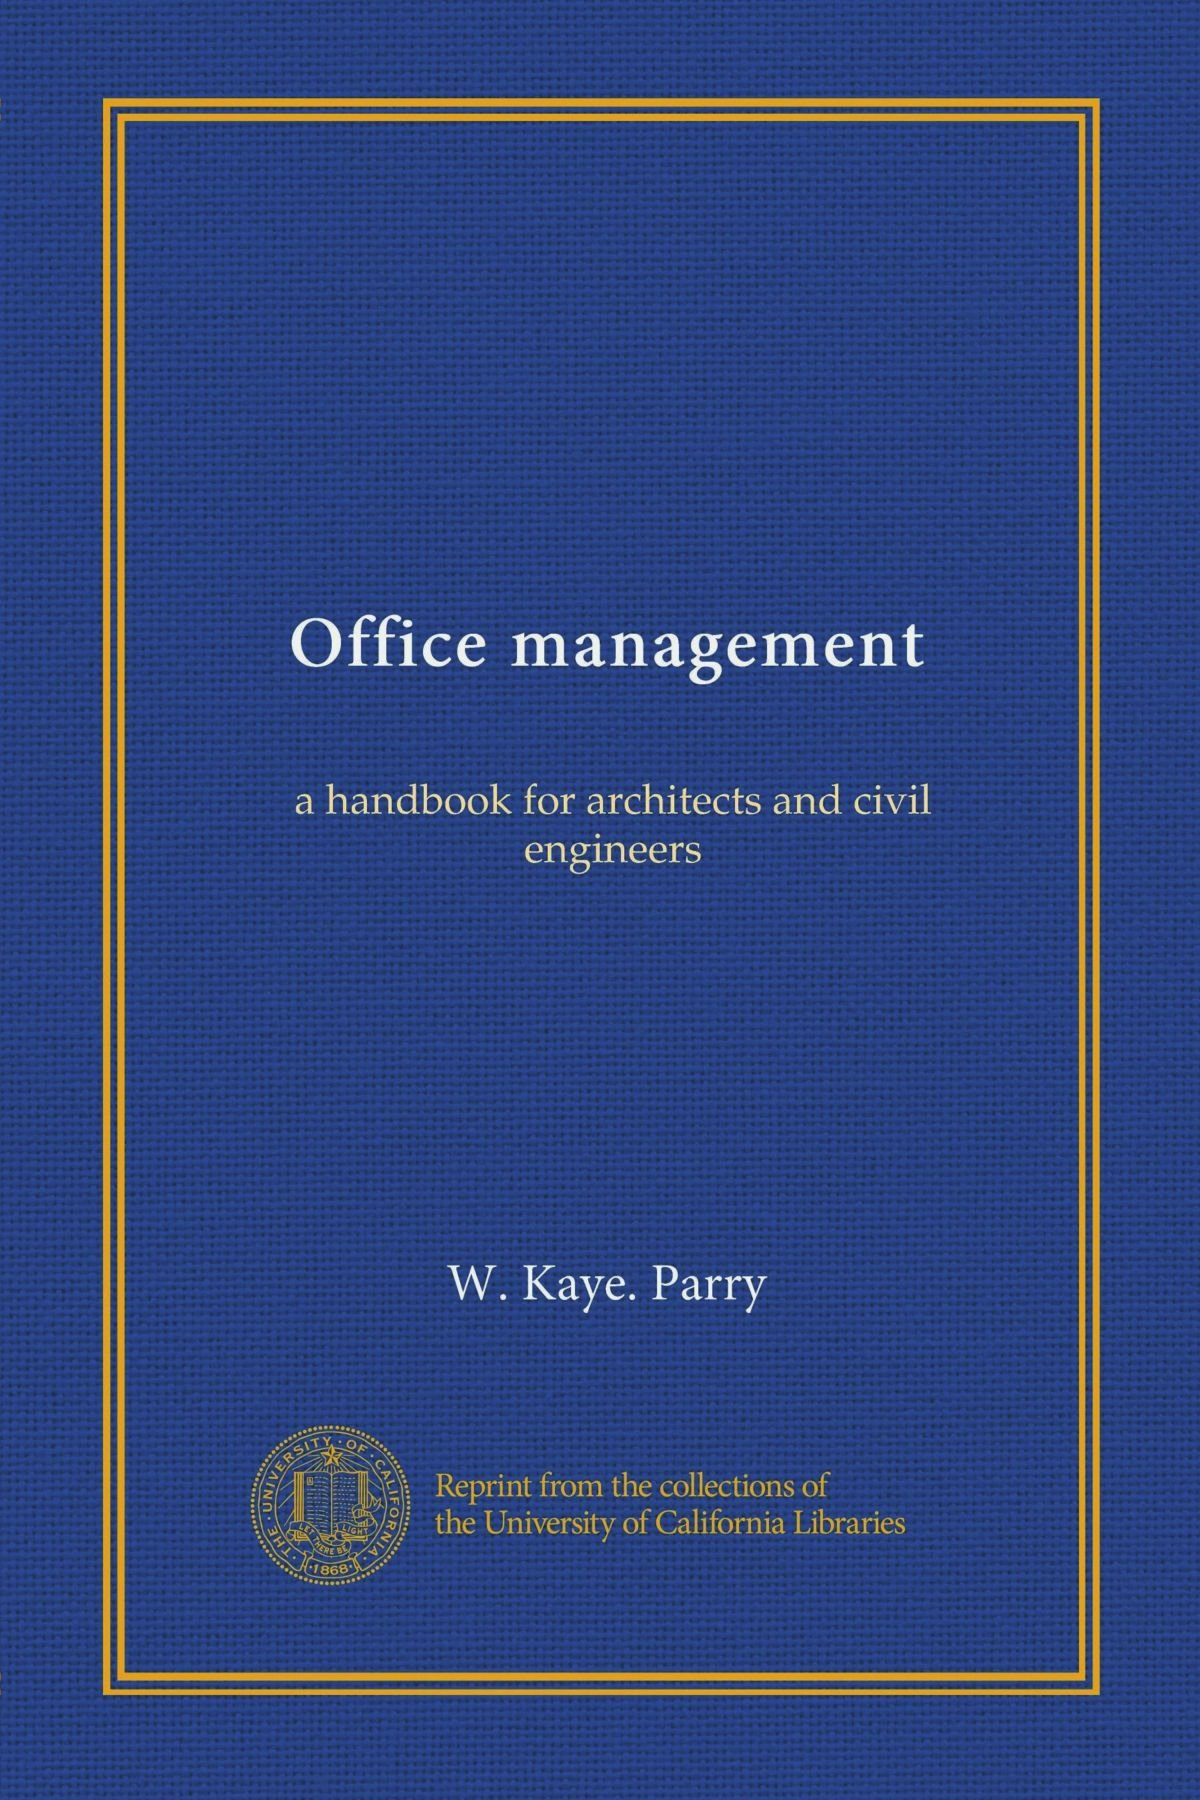 Office management (Vol-1): a handbook for architects and civil engineers PDF